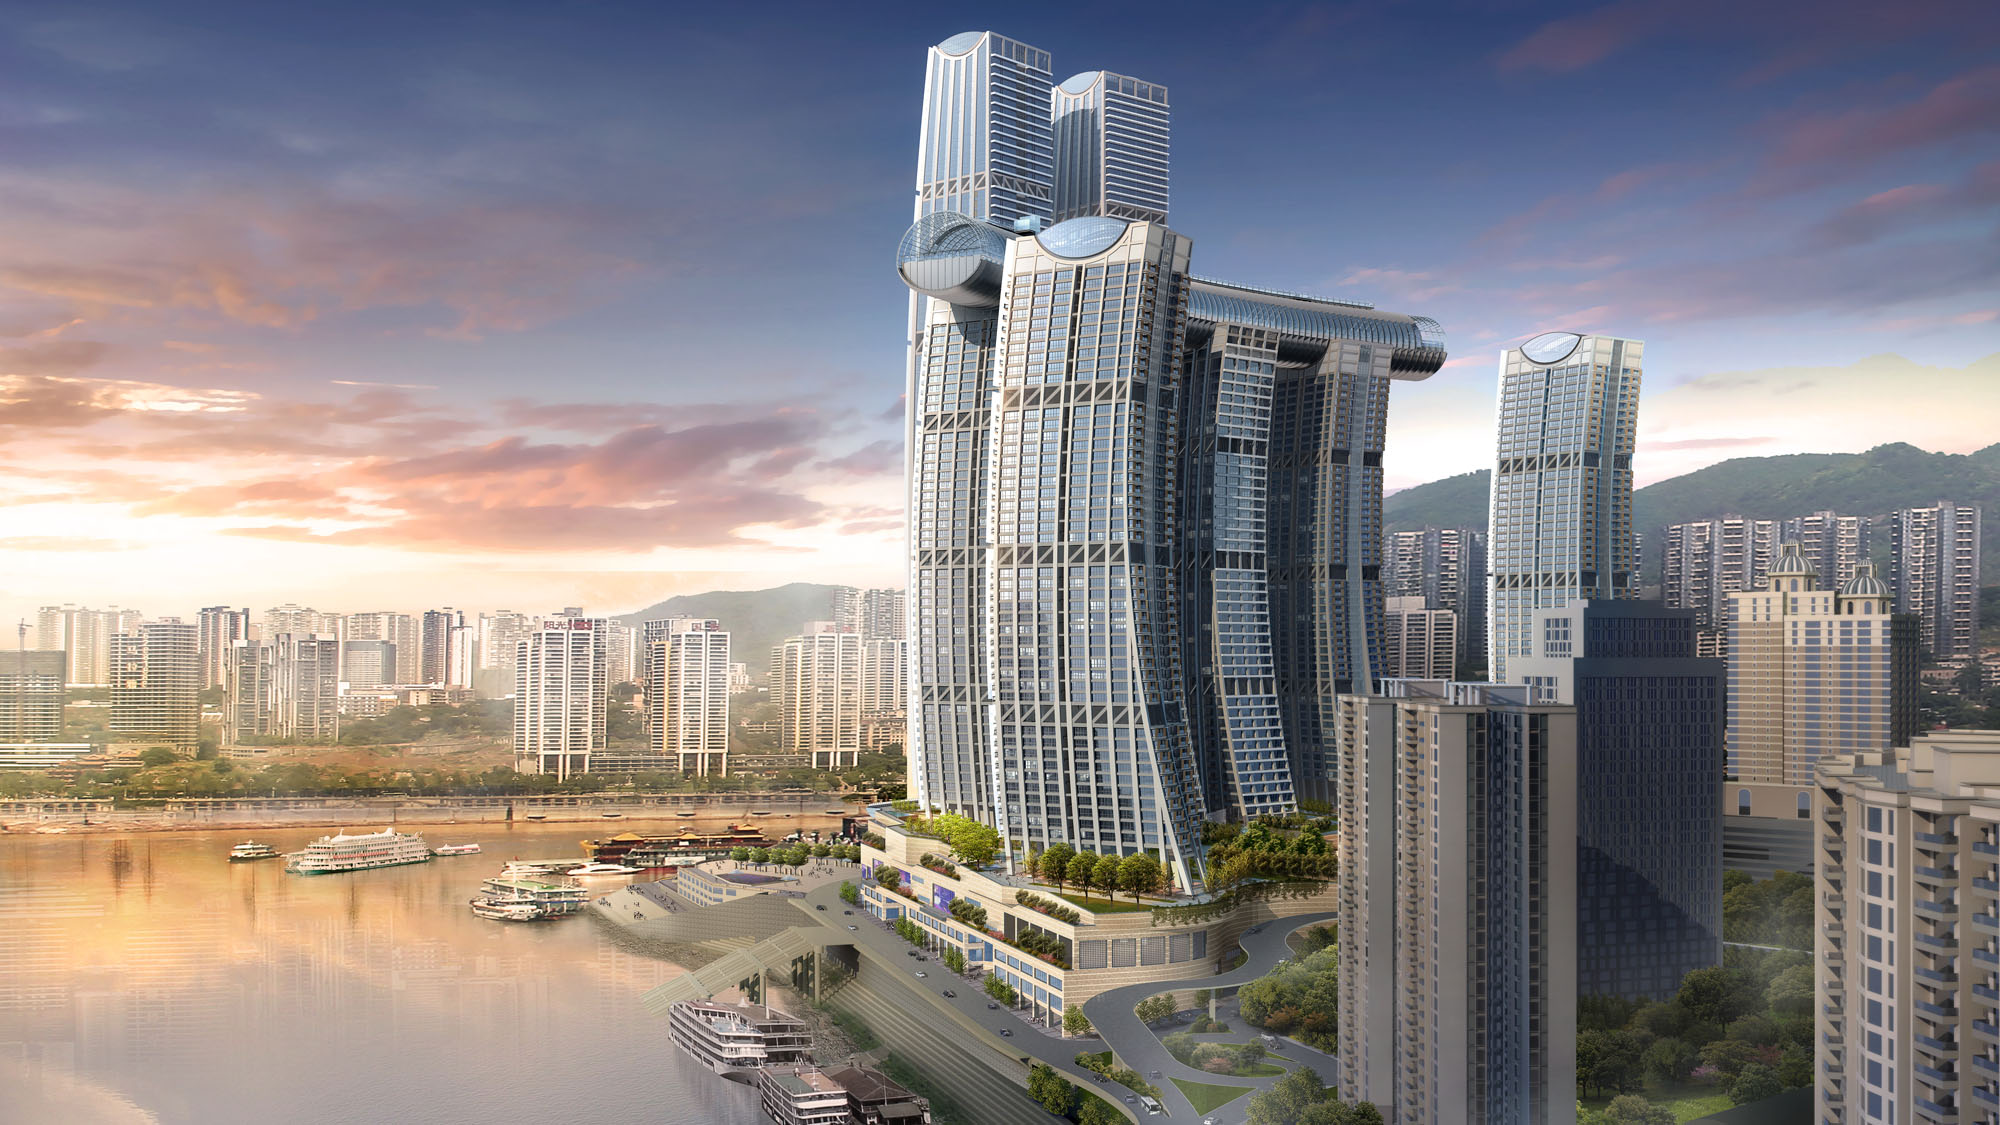 Raffles City Chongqing sideview2000x1125c Safdie Architects  CapitaLand China Investment Co Ltd3